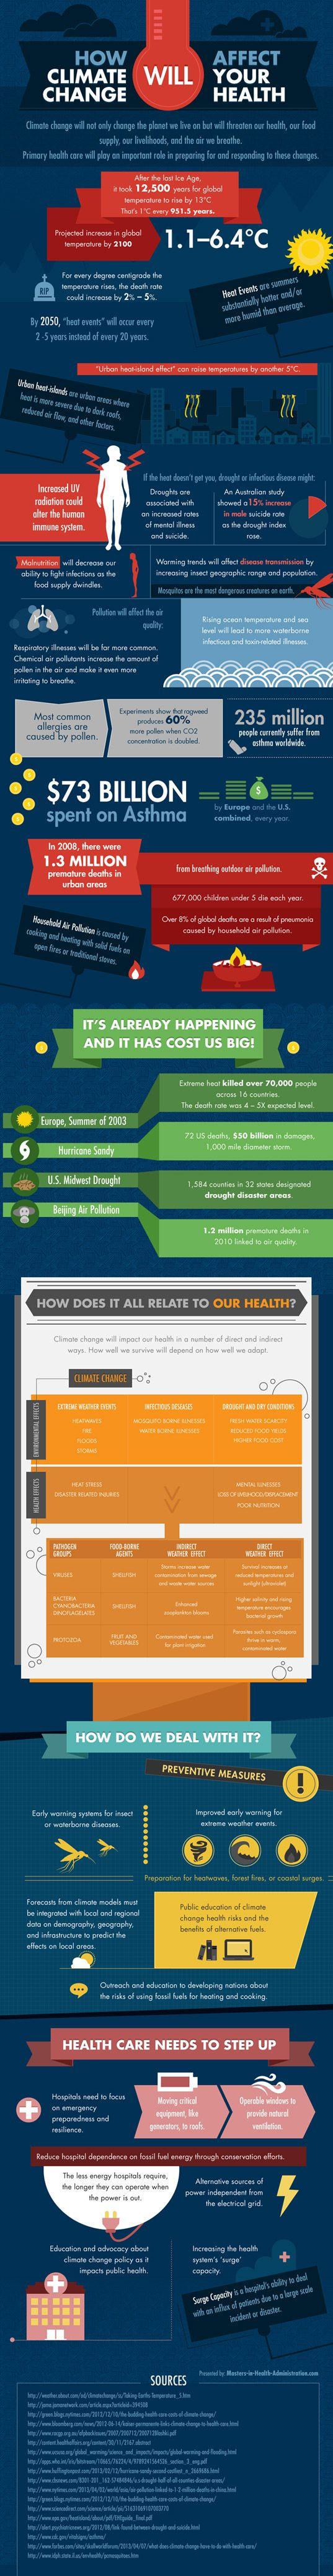 climate change, health, global warming, design for health, environment, environmental destruction, healthcare, infographic, urban heat islan...